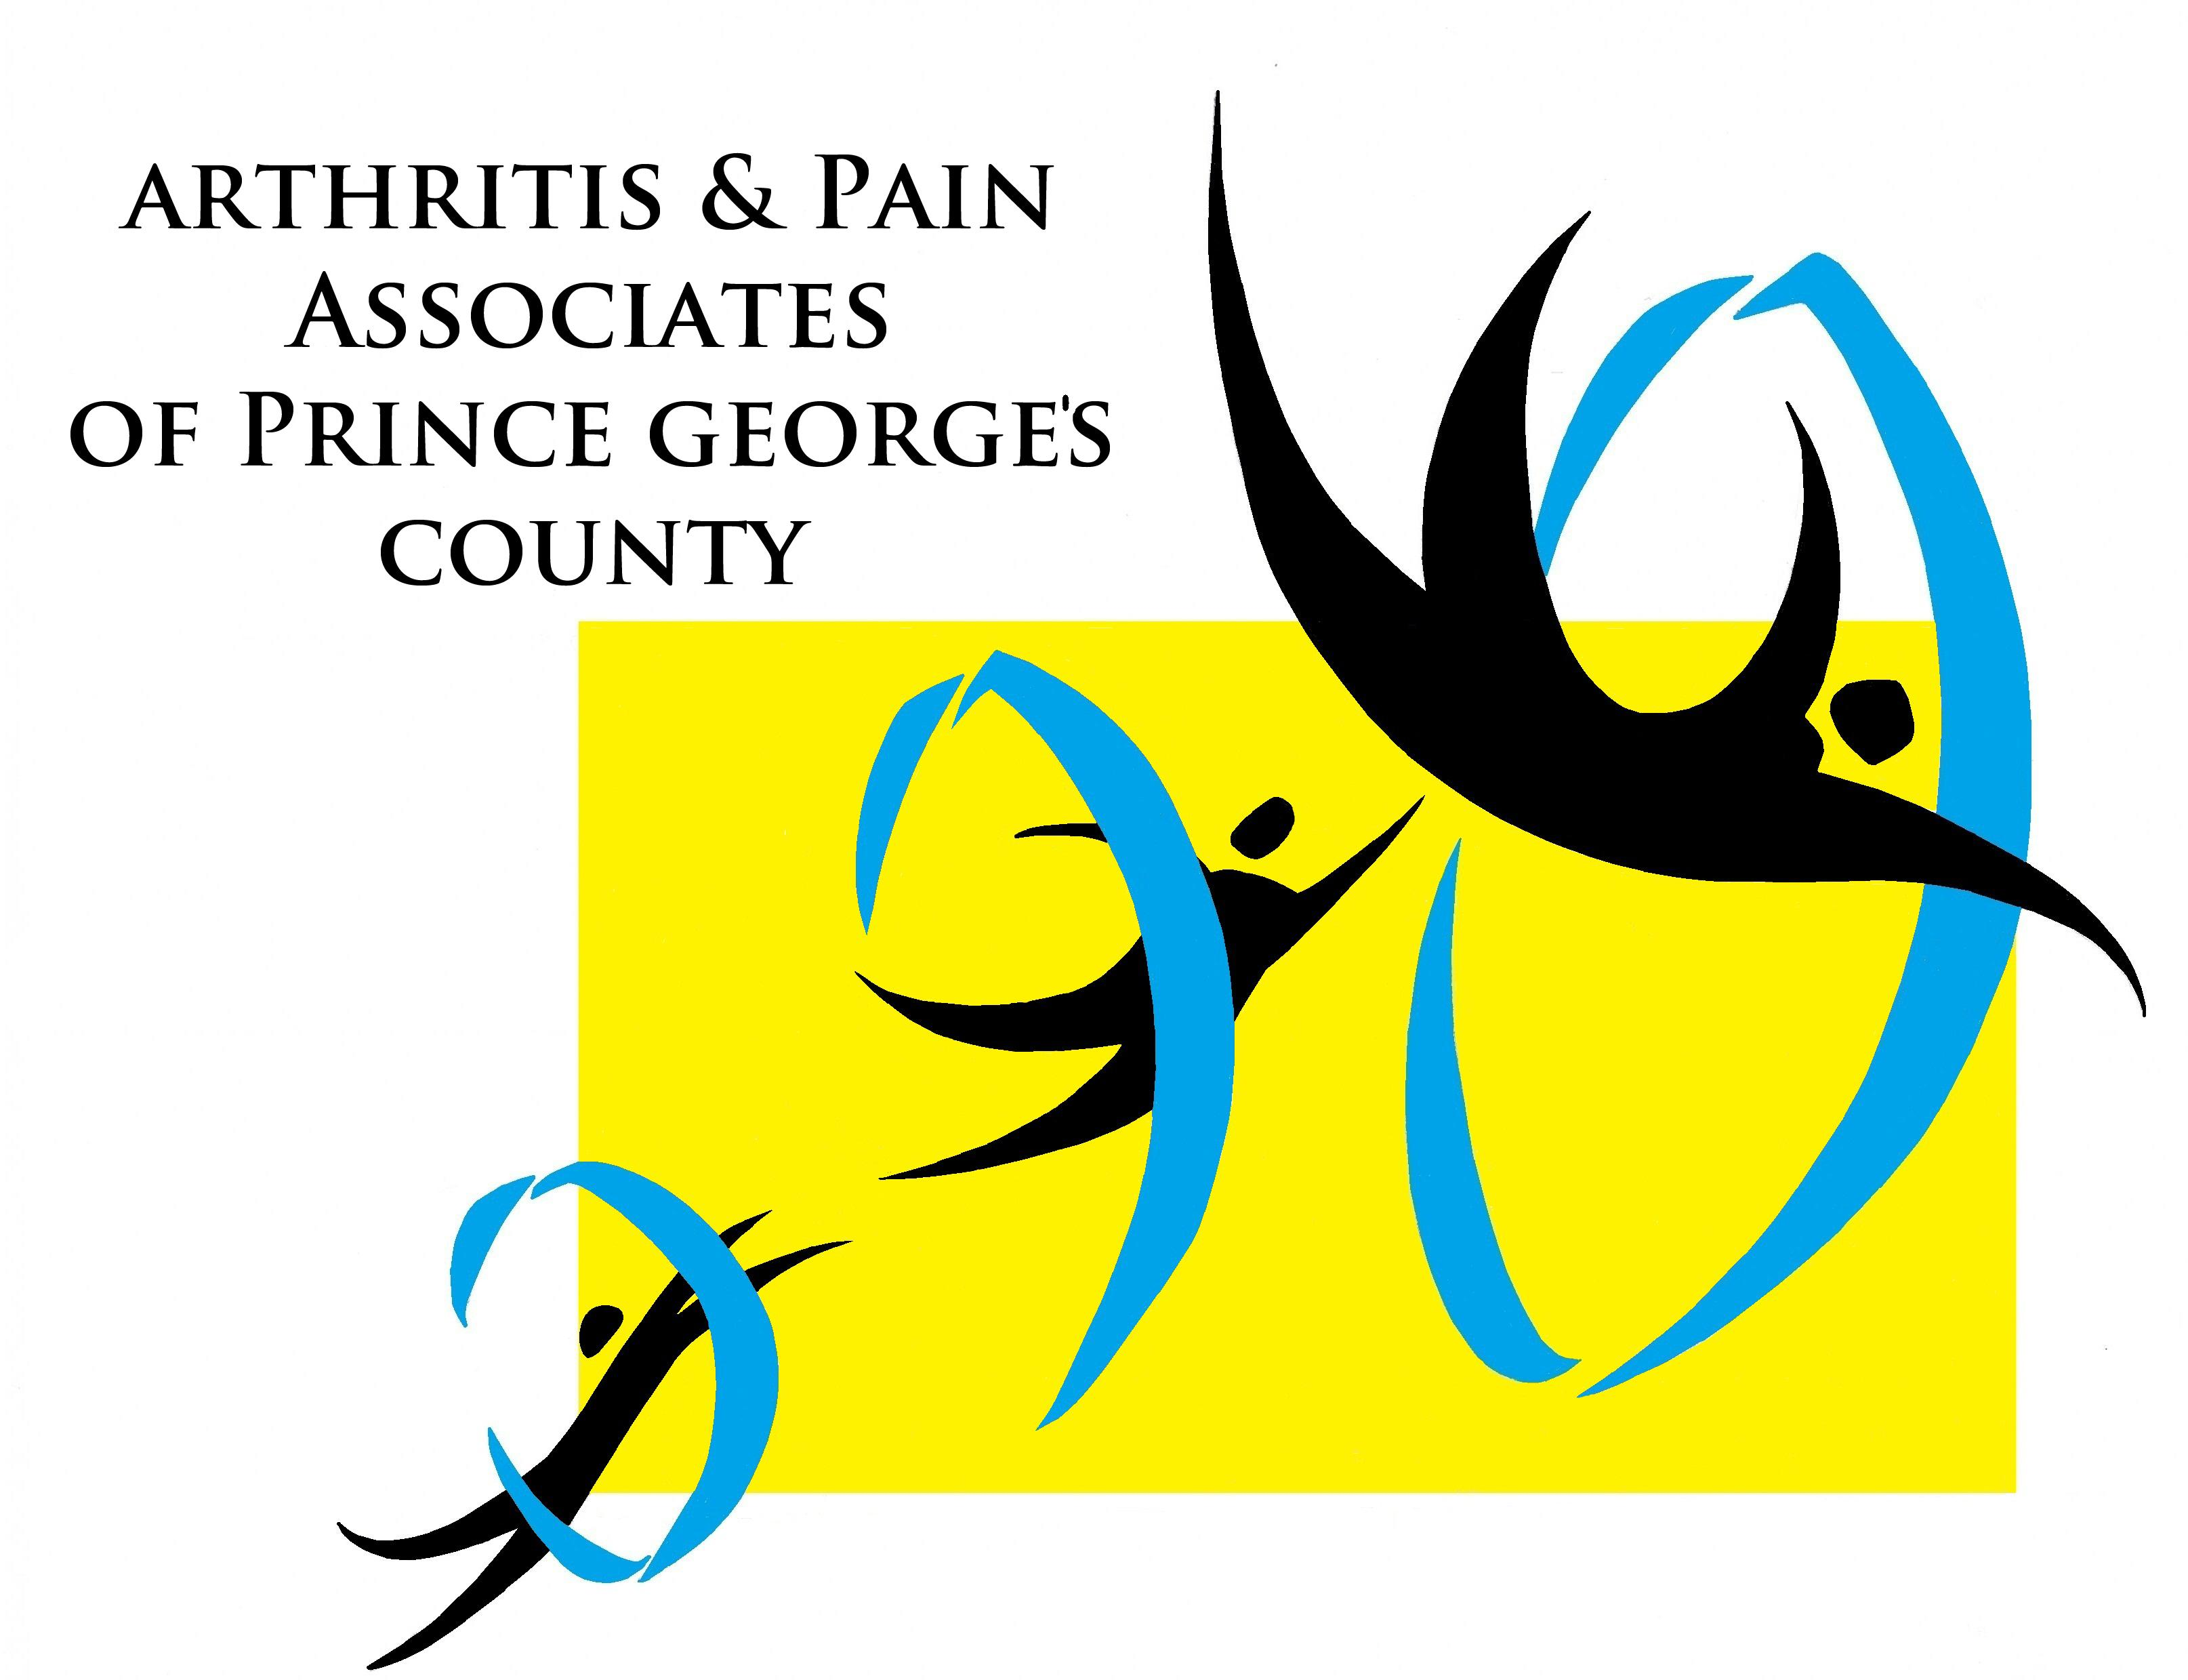 arthritis and pain associates of prince george's county logo